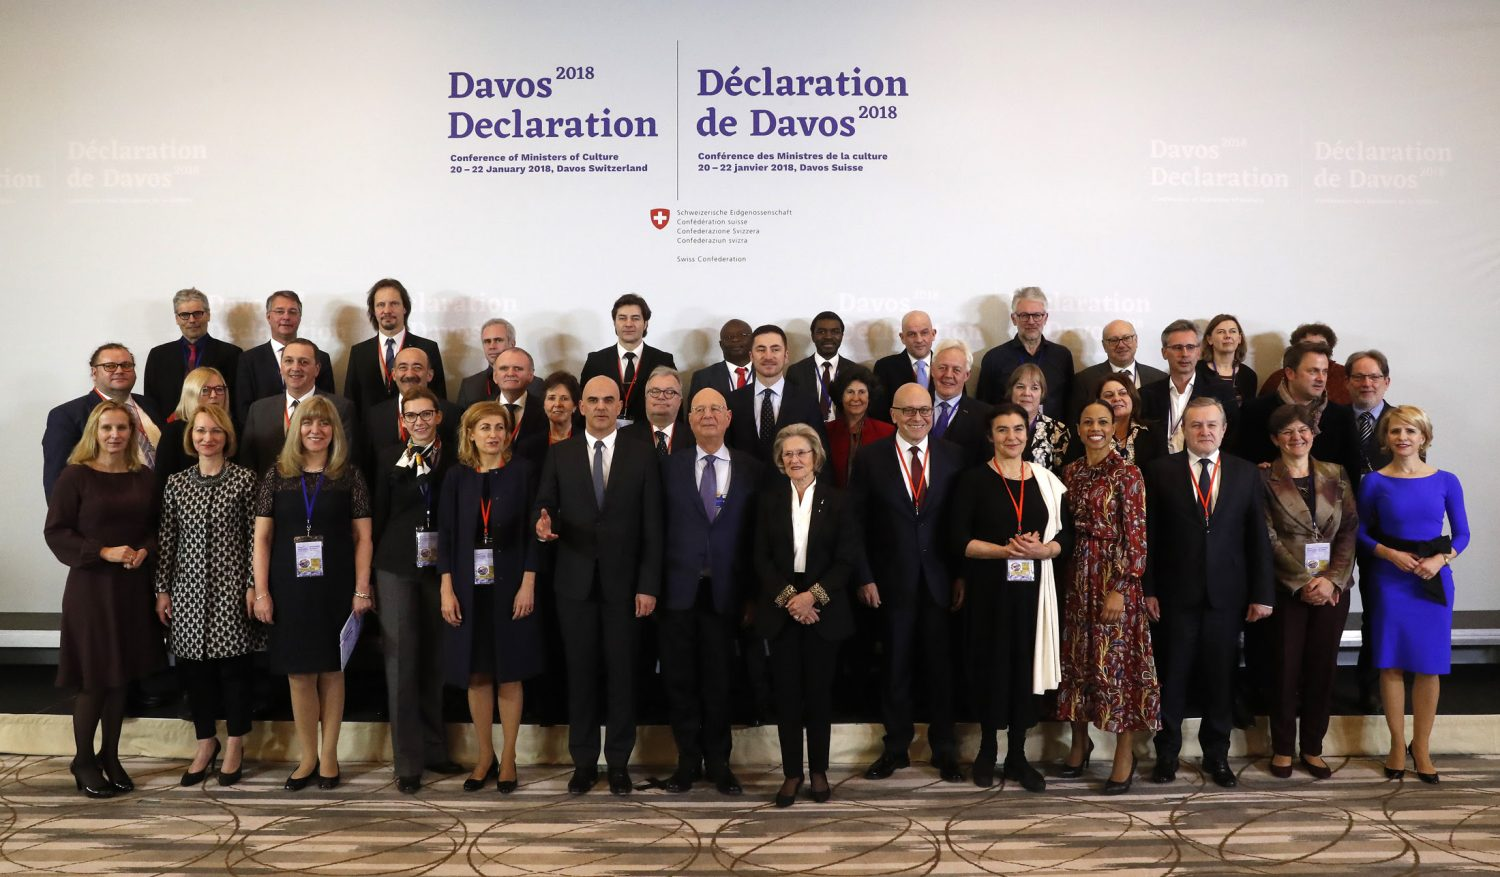 The architects council of europe endorses the davos for Architects council of europe